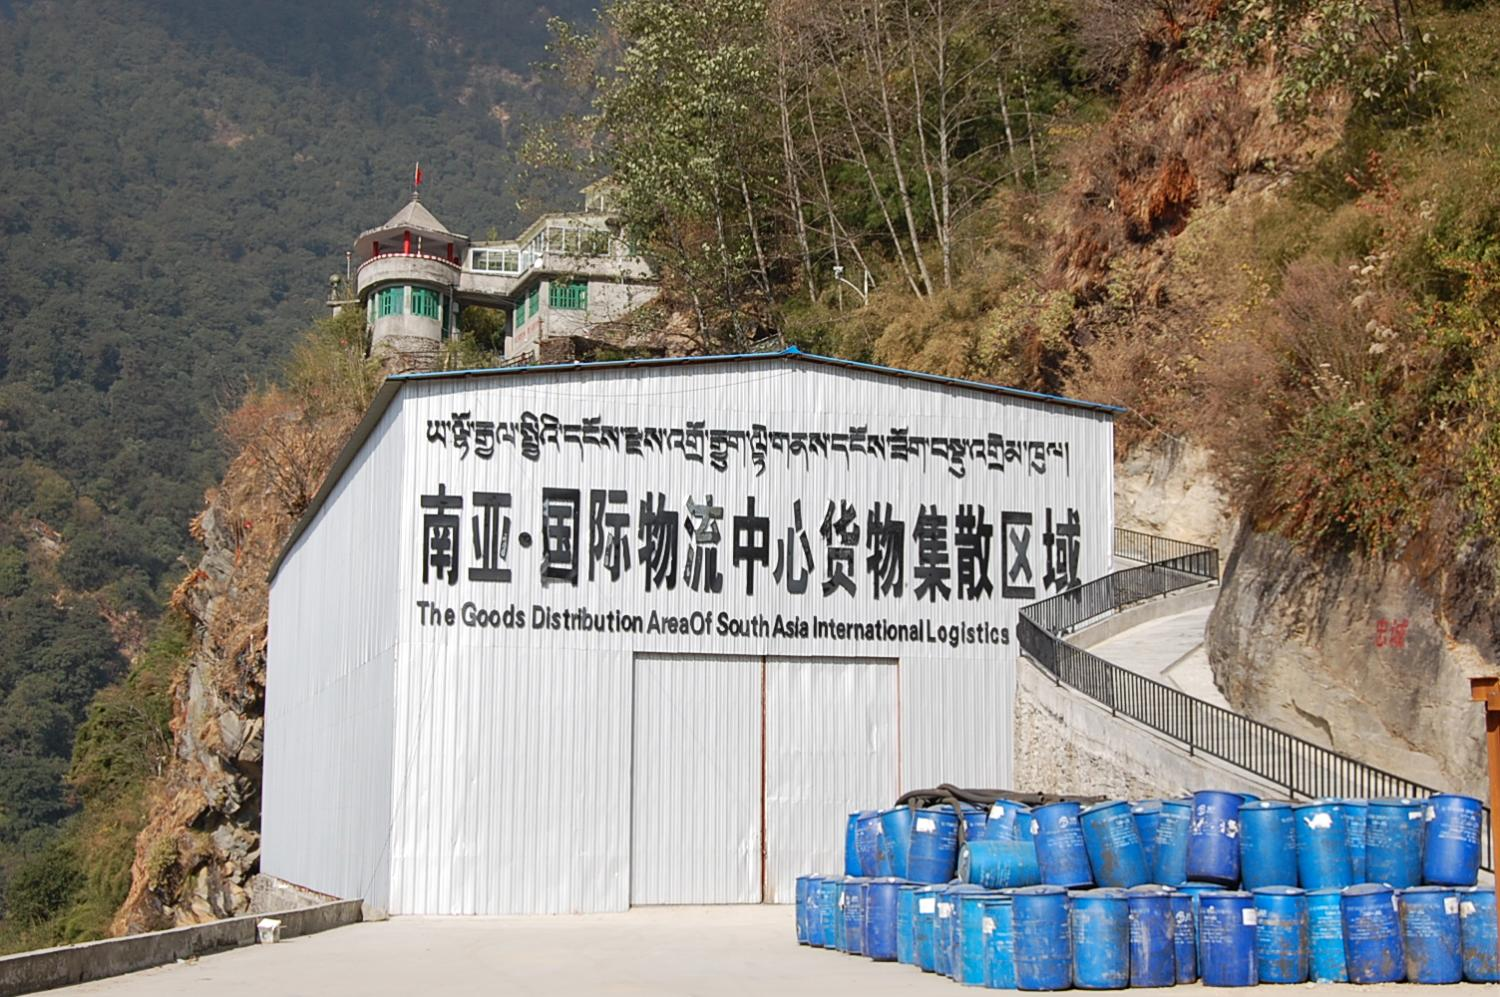 The undersized cargo warehouse at Zhangmu dry port